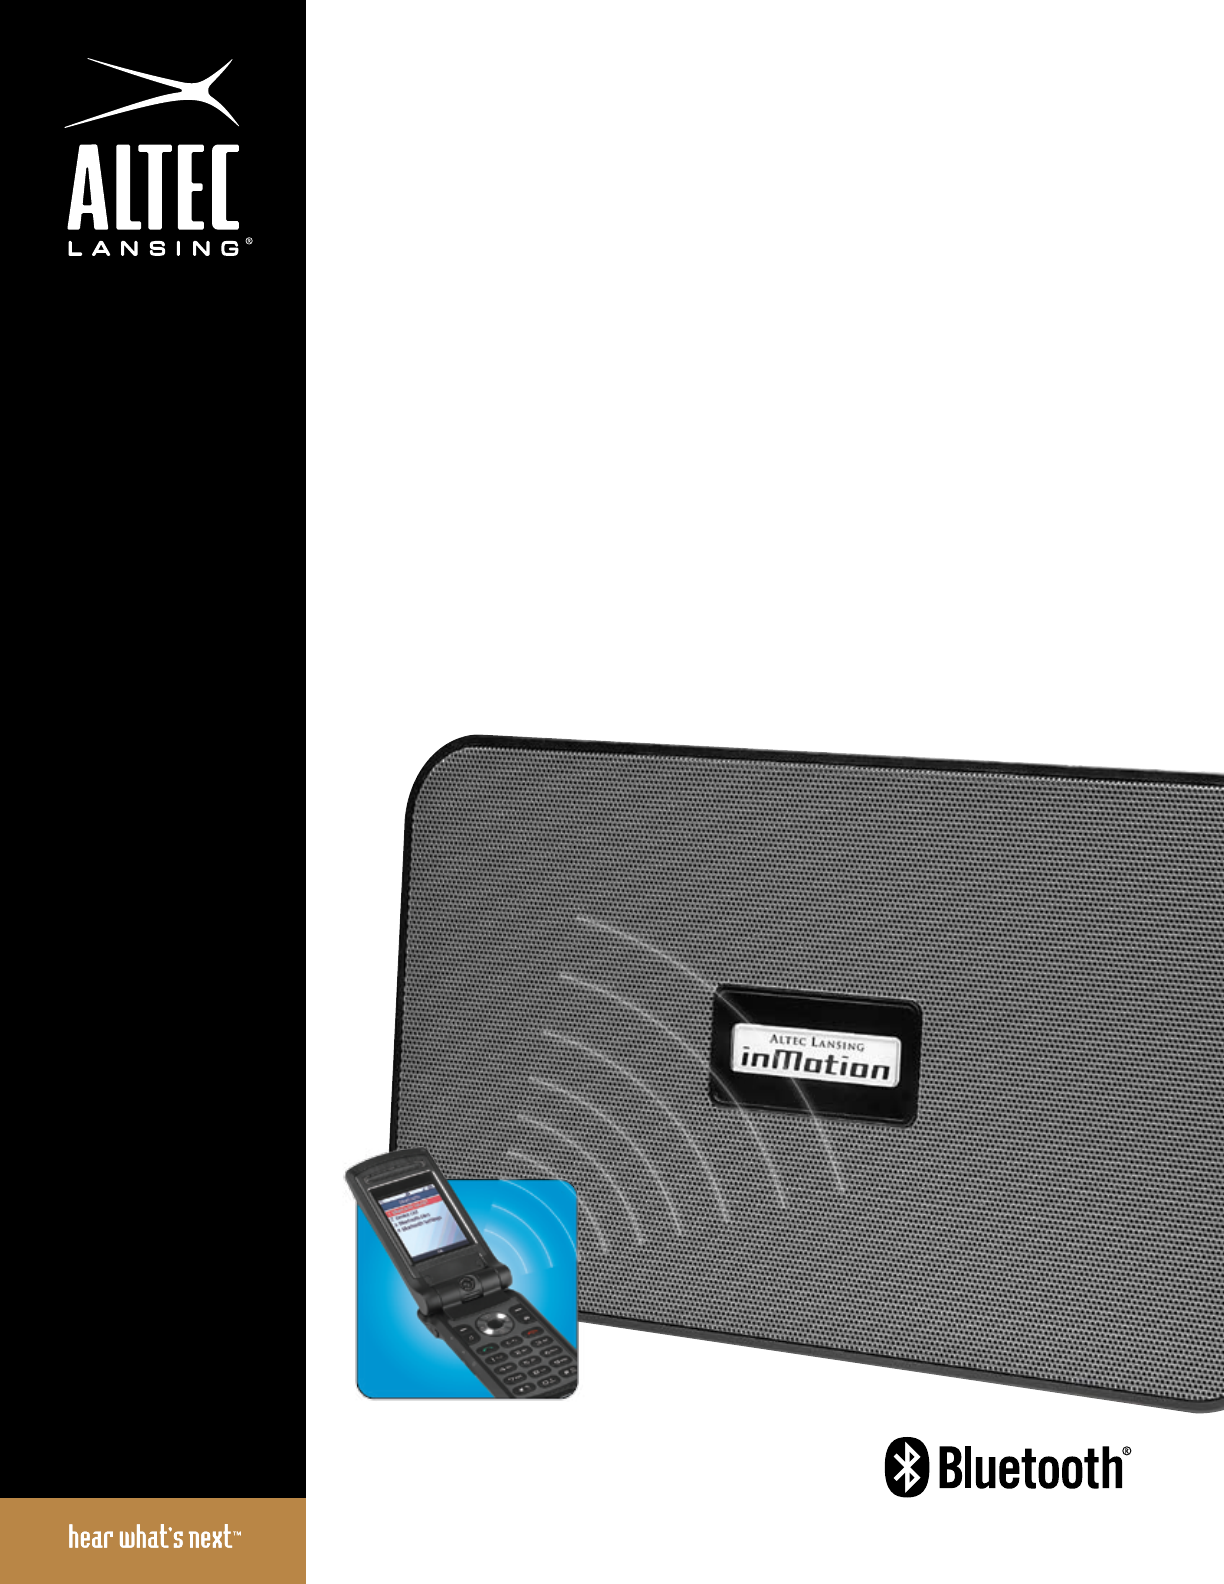 altec lansing speaker system imt525 user guide manualsonline com rh audio manualsonline com Altec Lansing InMotion Battery Altec Lansing InMotion iM3C